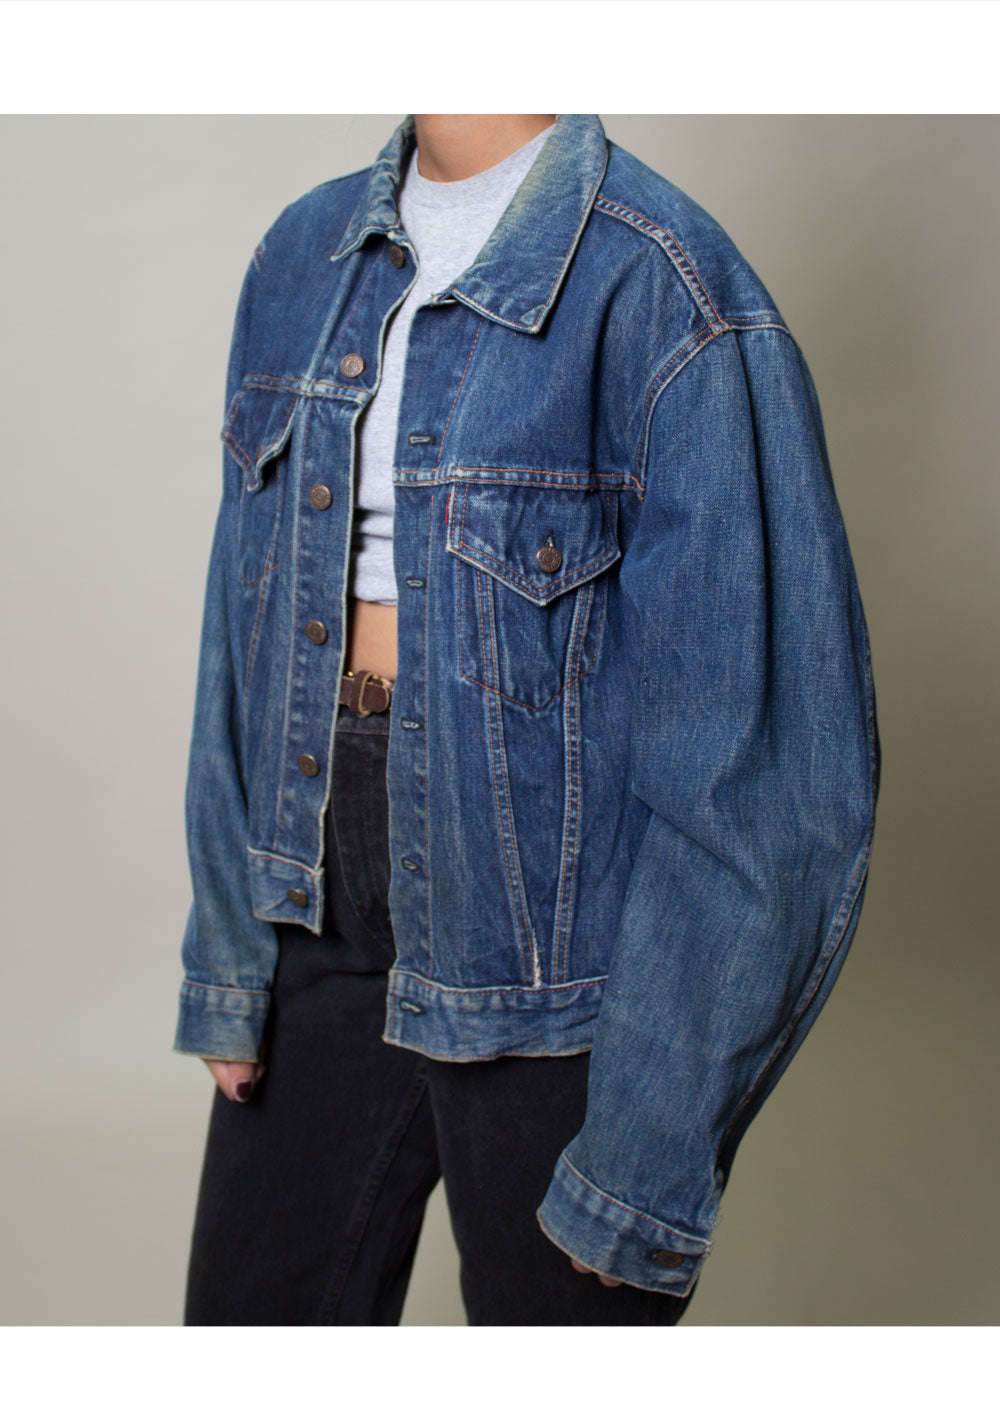 Dark LEVIS Denim Jacket